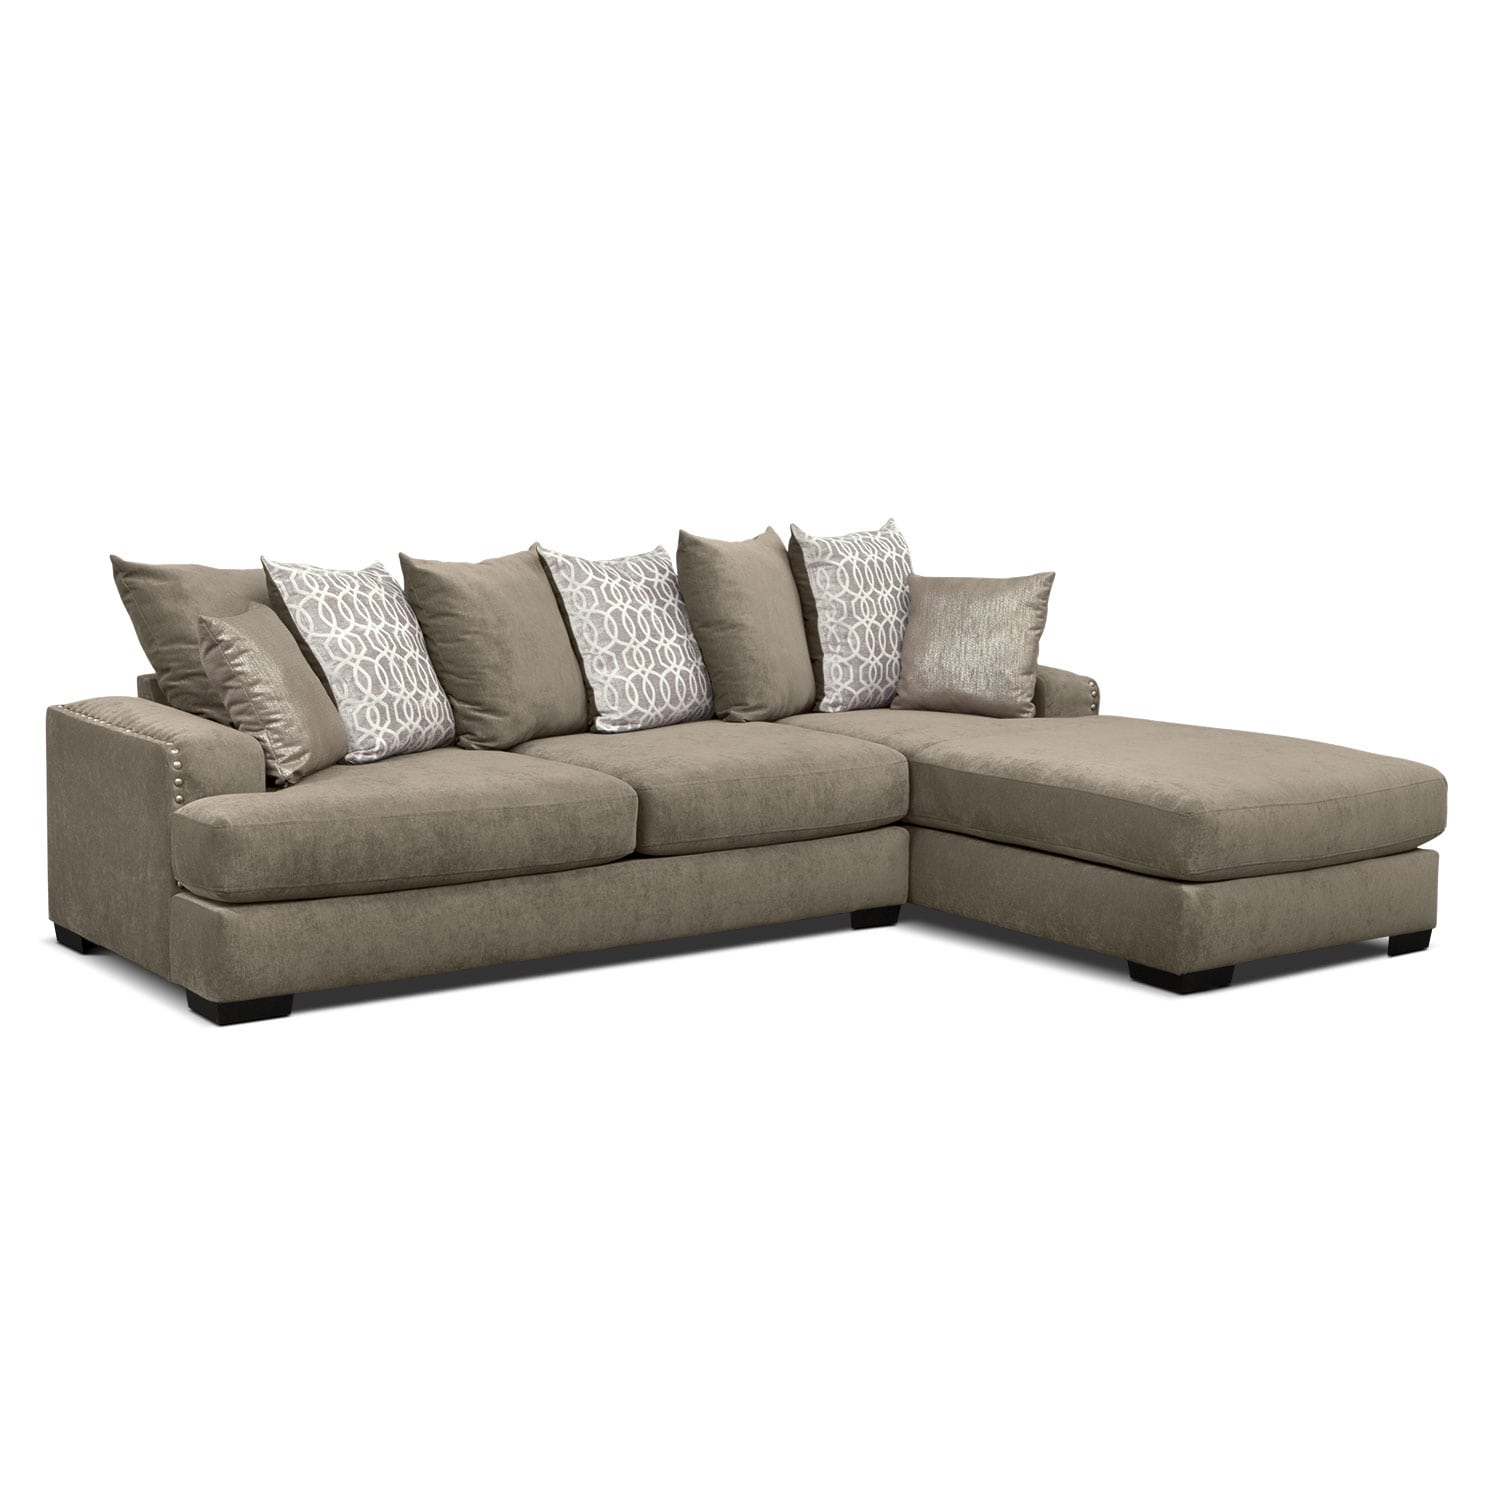 Sectional sofas living room seating american signature for American signature furniture commercial chaise